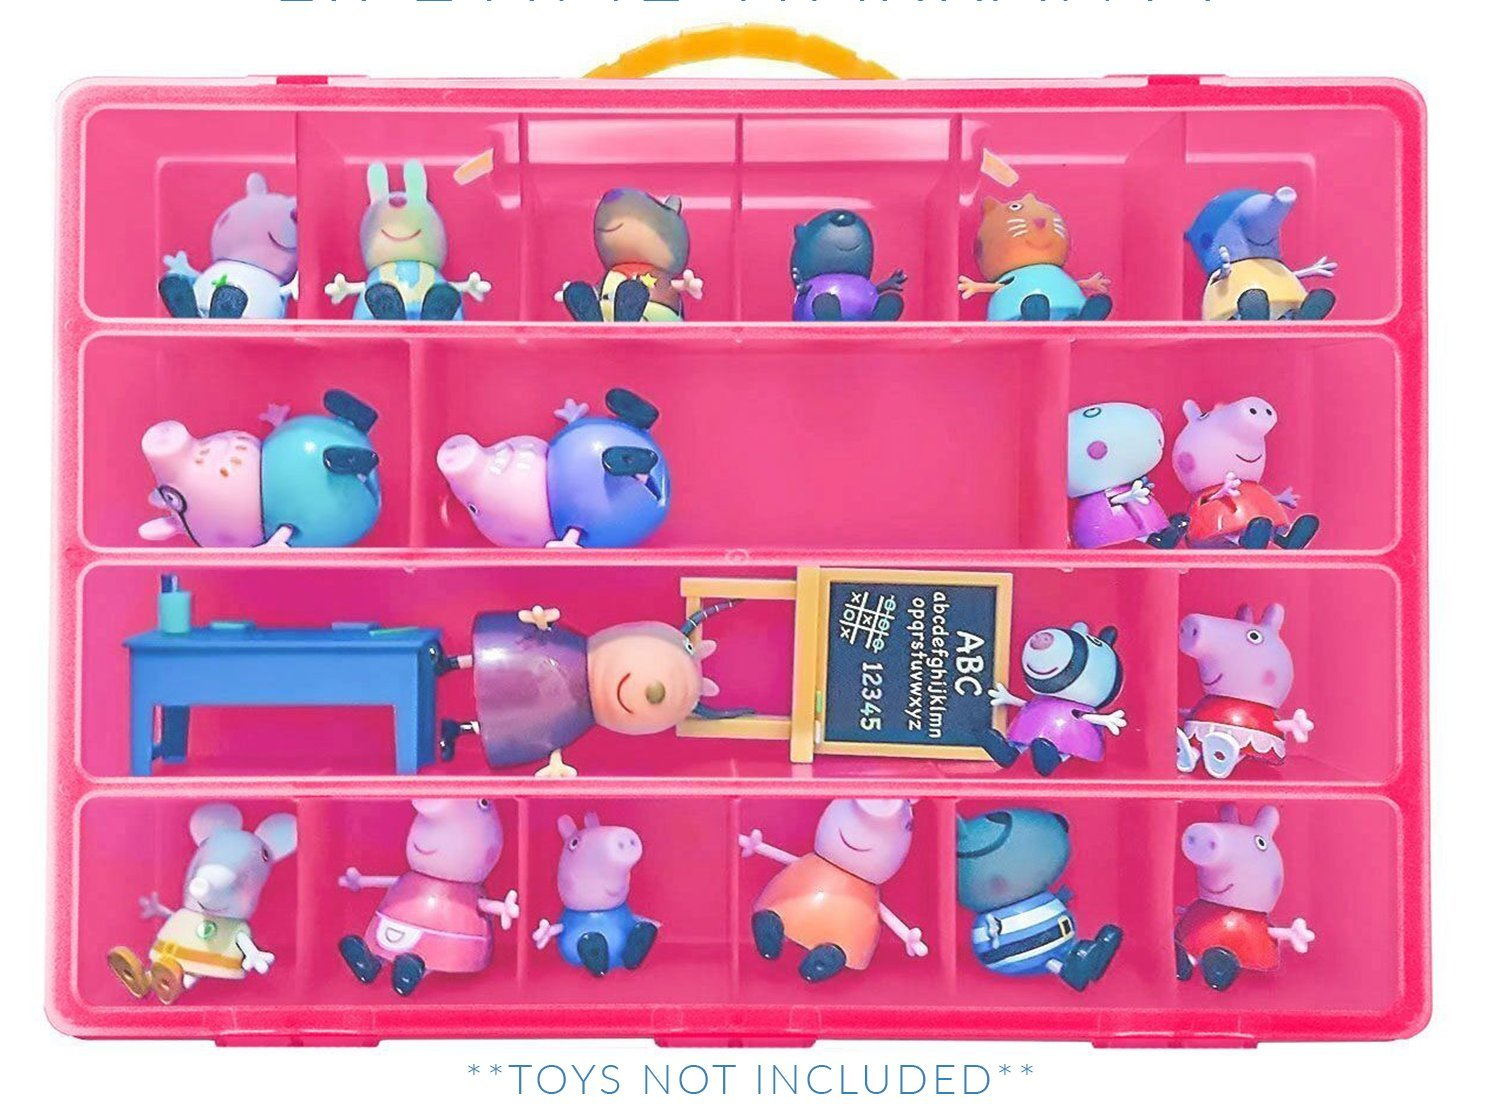 Life Made Better Toy Organizer with Carrying Handle, Fits Up to 40 Figures and Compatible with Peppa Pig Mini Figures, Pink